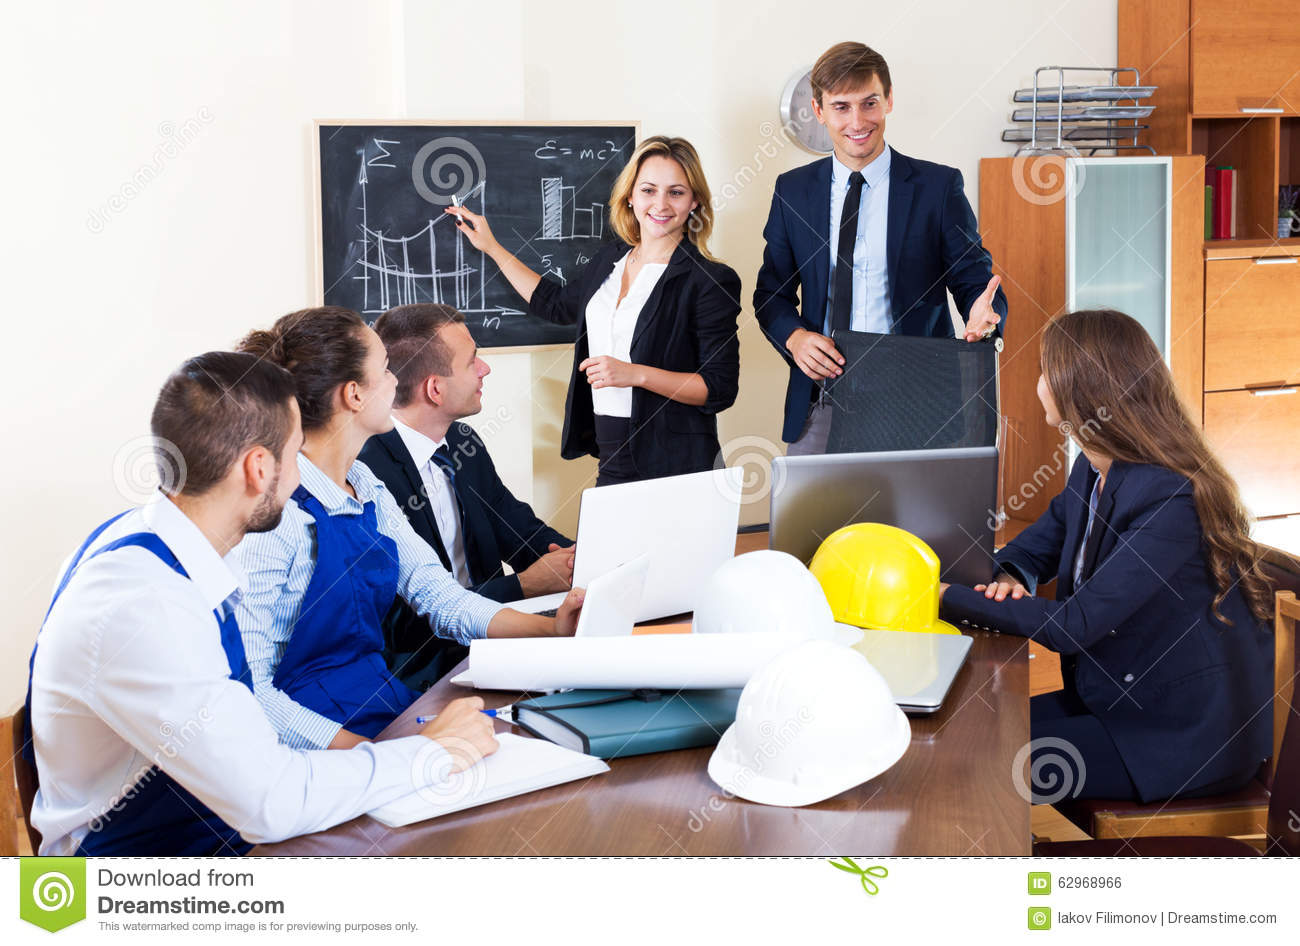 Successful Architects architectural engineers discussing business project stock photo